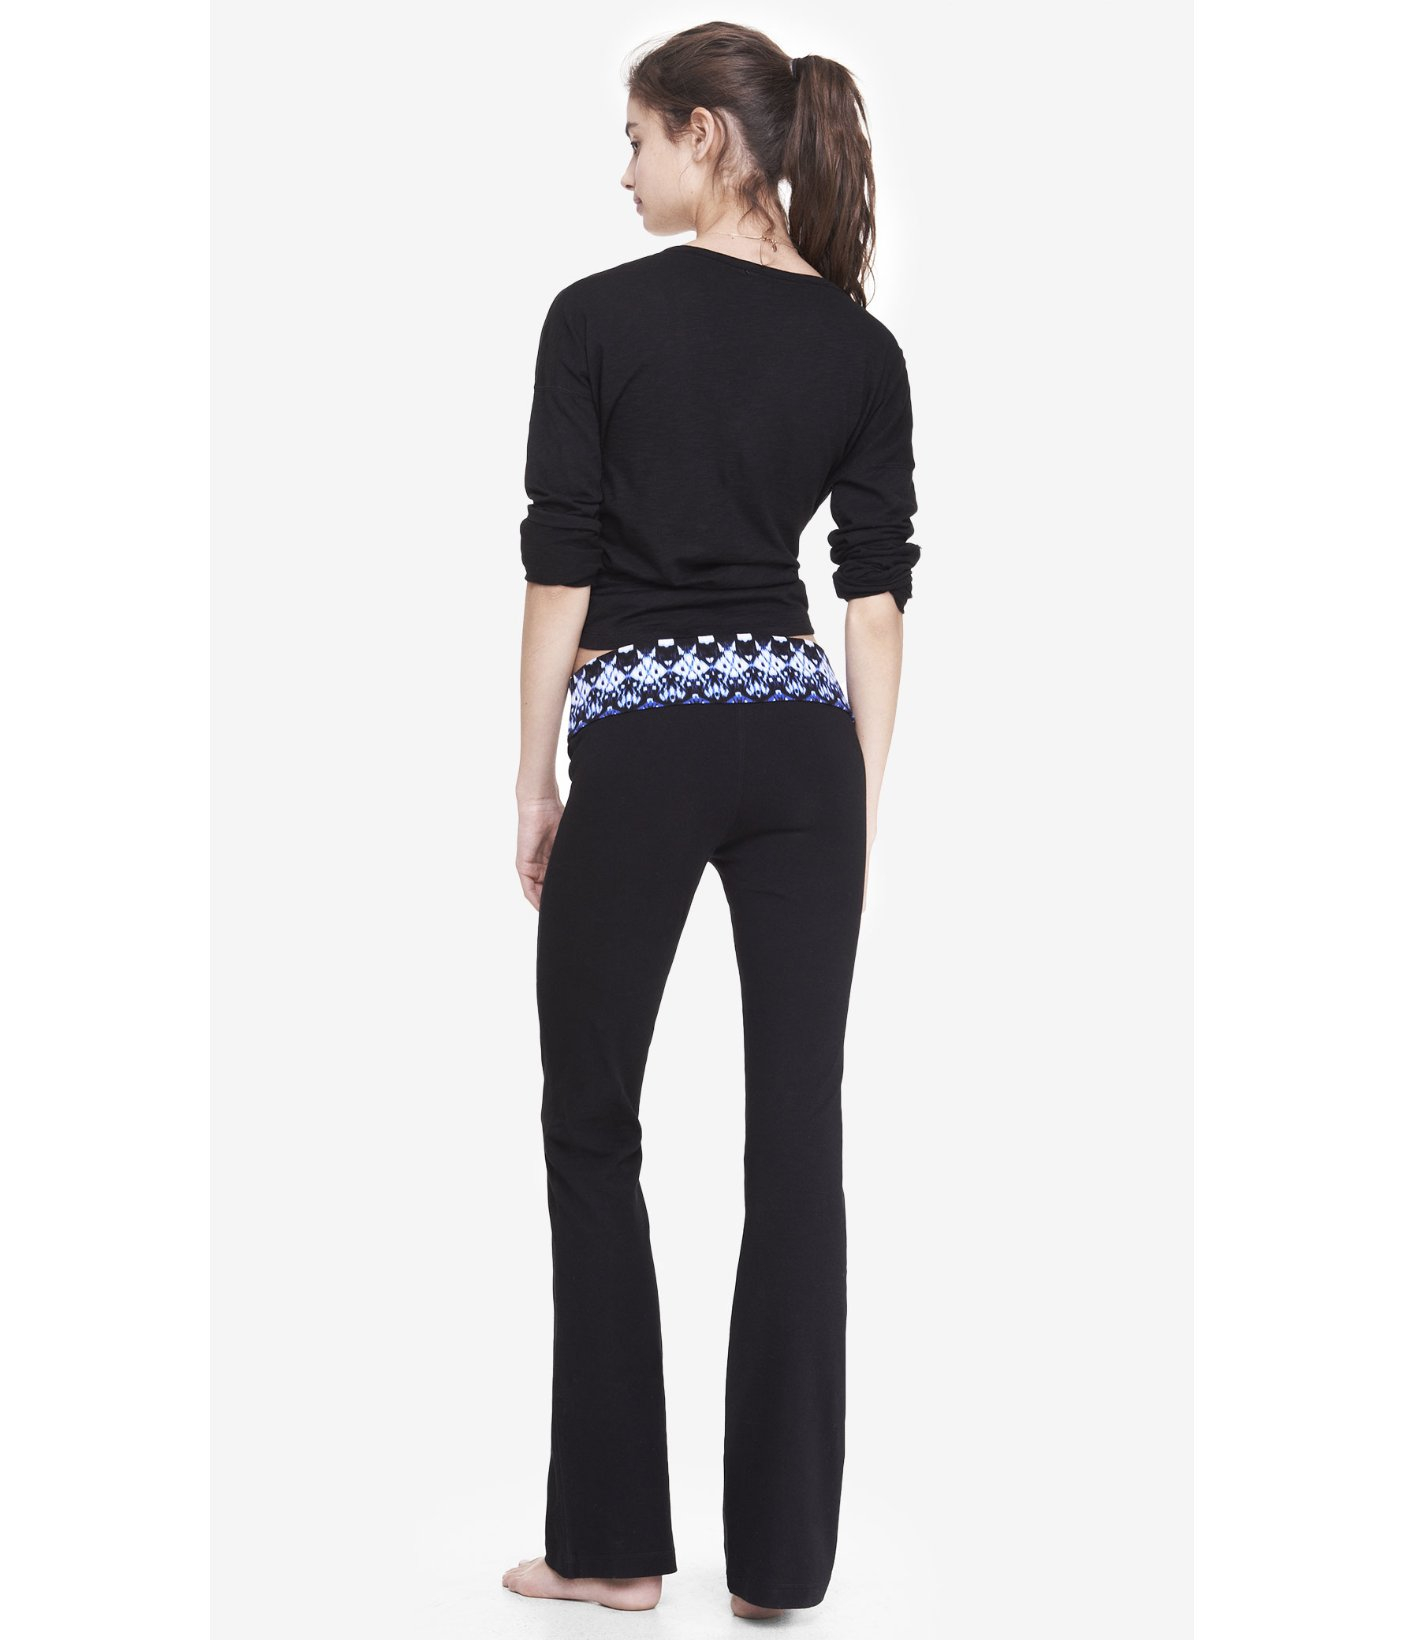 Express Ikat Print Fold-Over Yoga Pant In Black